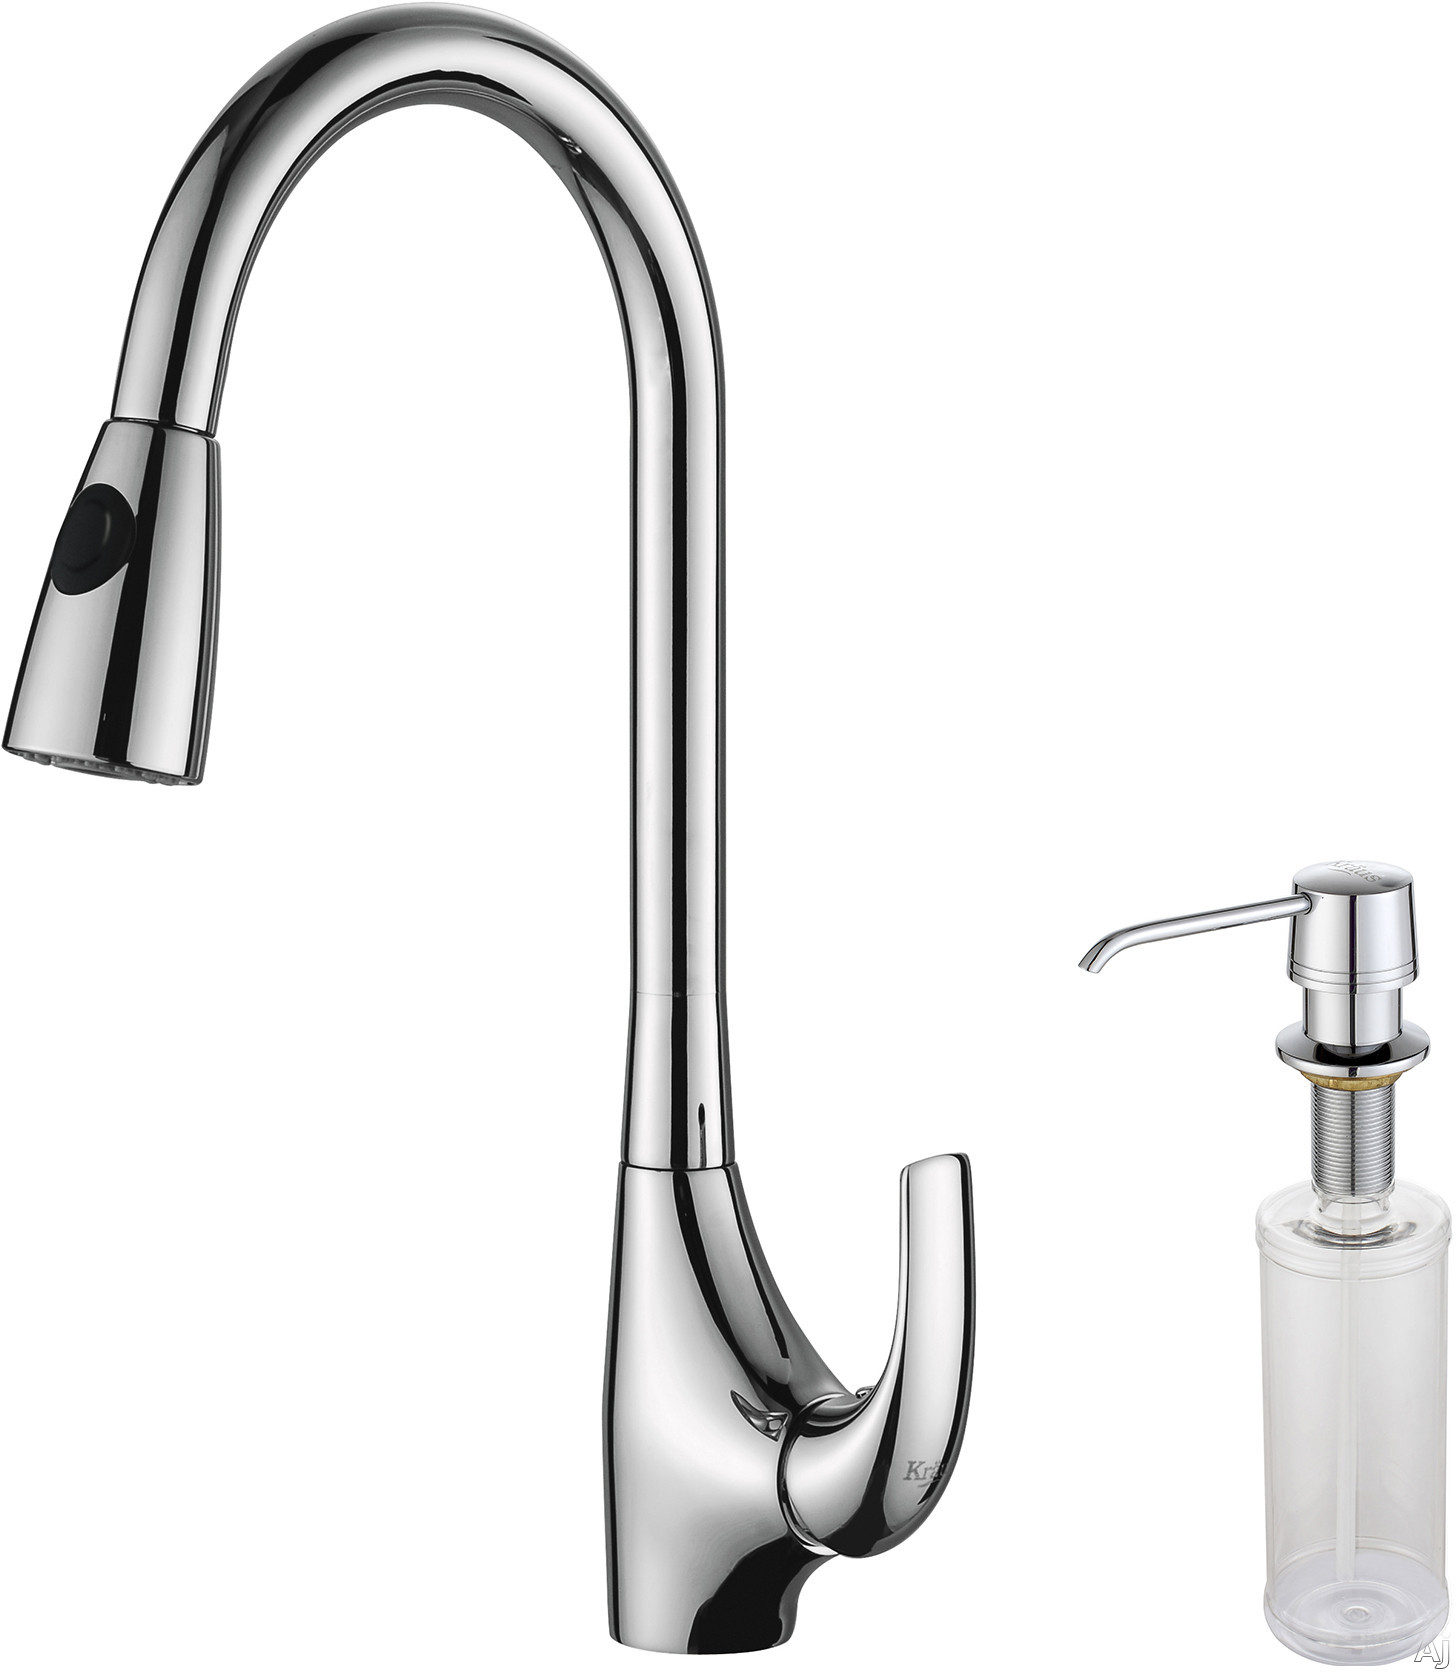 Kraus Kpf1621ksd30ch Single Lever Pull Out Kitchen Faucet